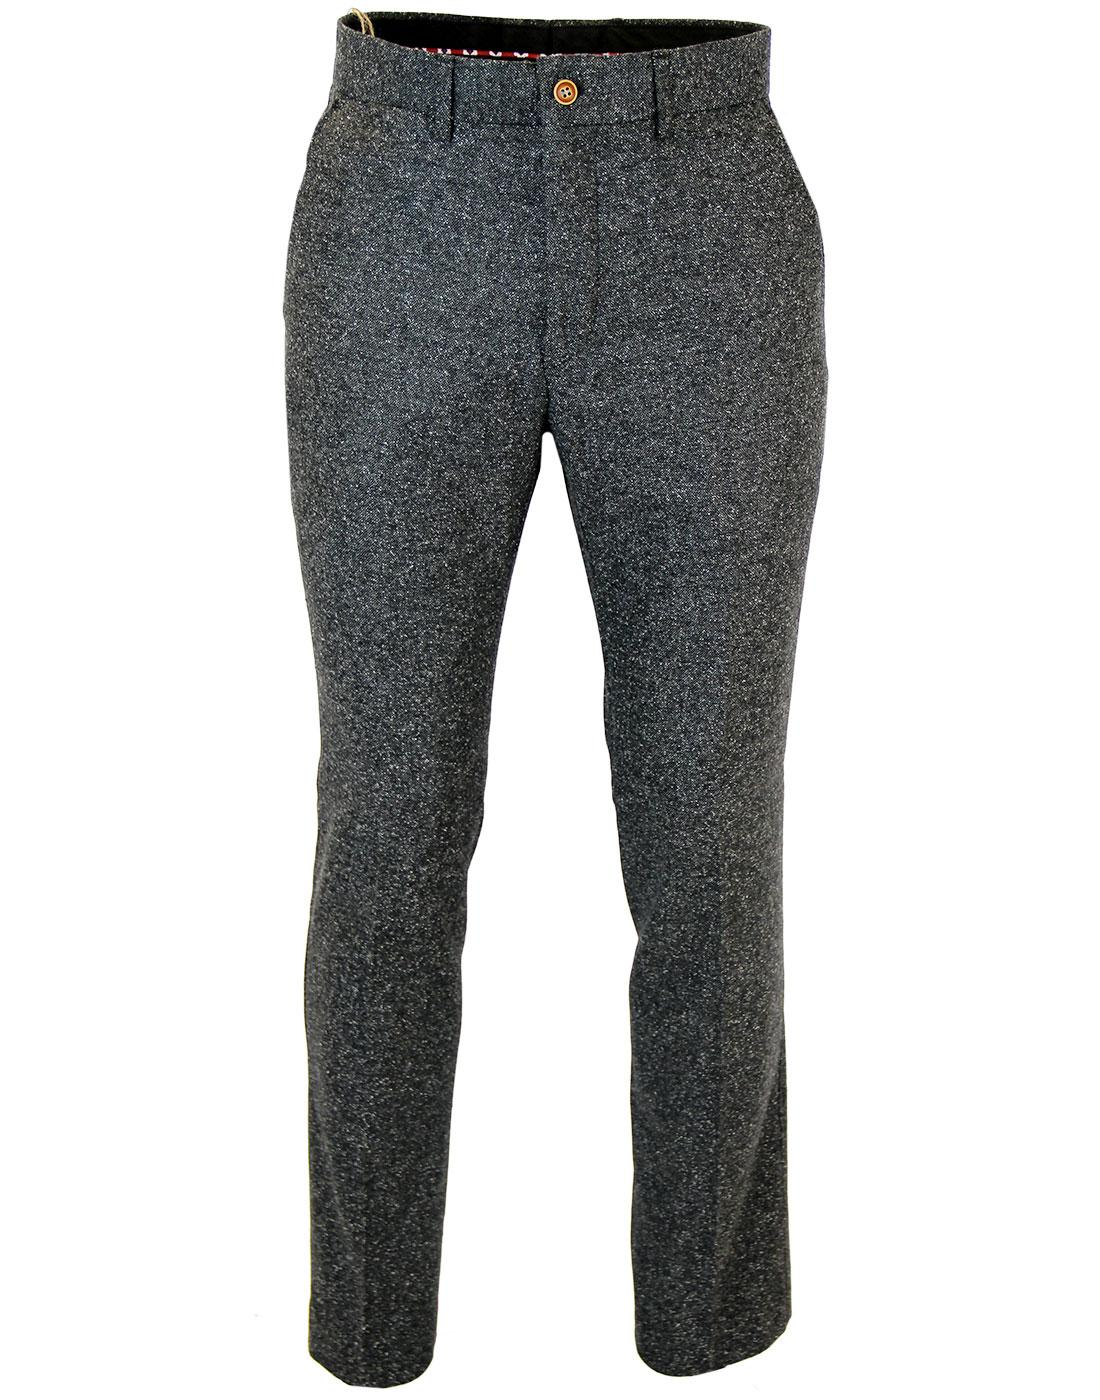 GIBSON LONDON Mod Donegal Flat Front Trousers (C)